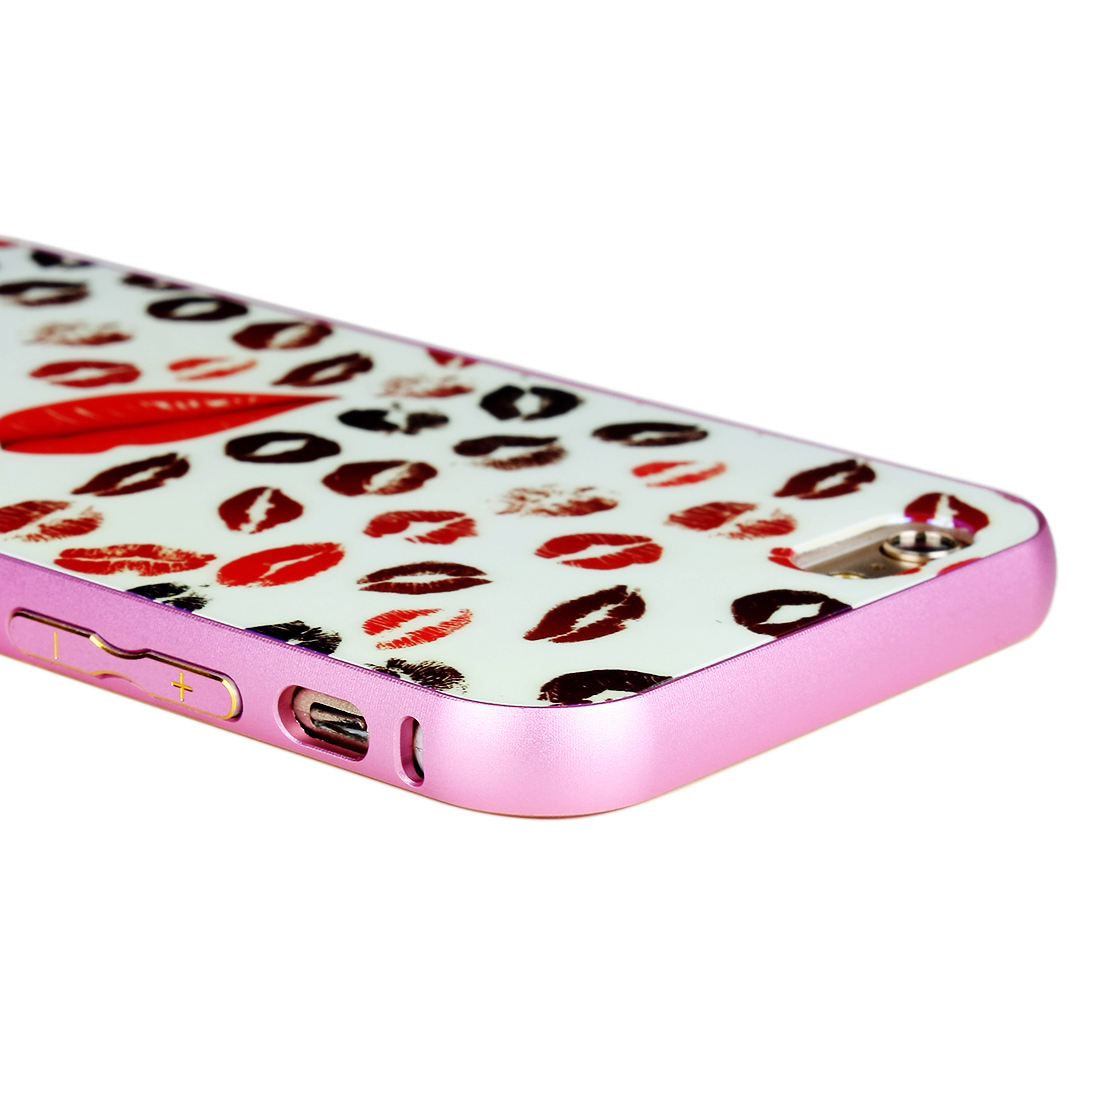 NEW Luxury Ultra-thin Metal Case Cover for iPhone 6